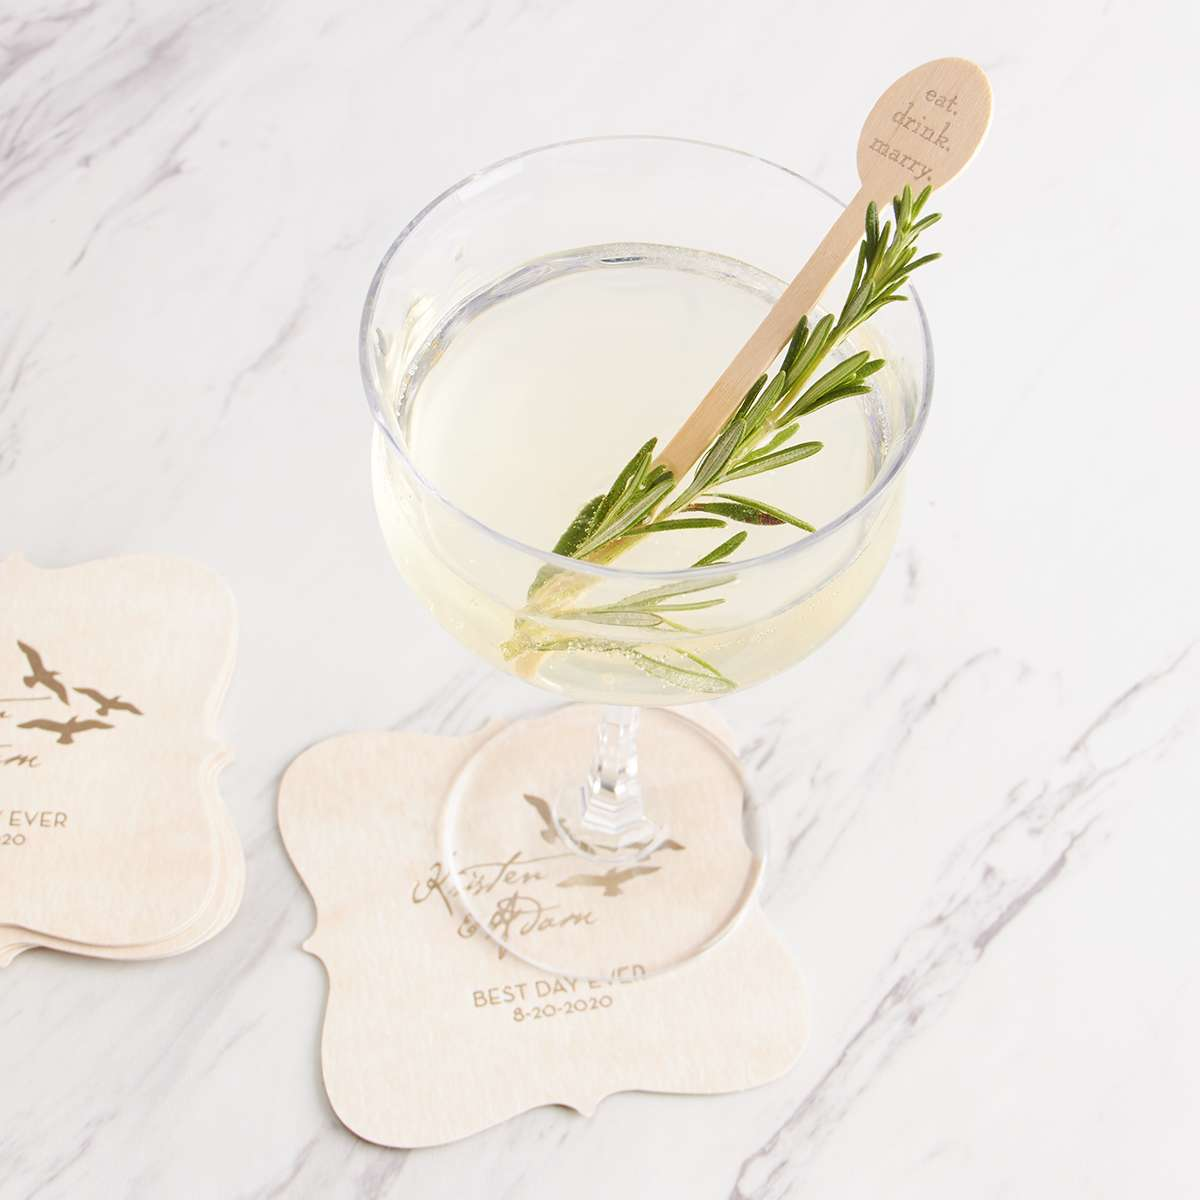 signature cocktail rosemary gimlet